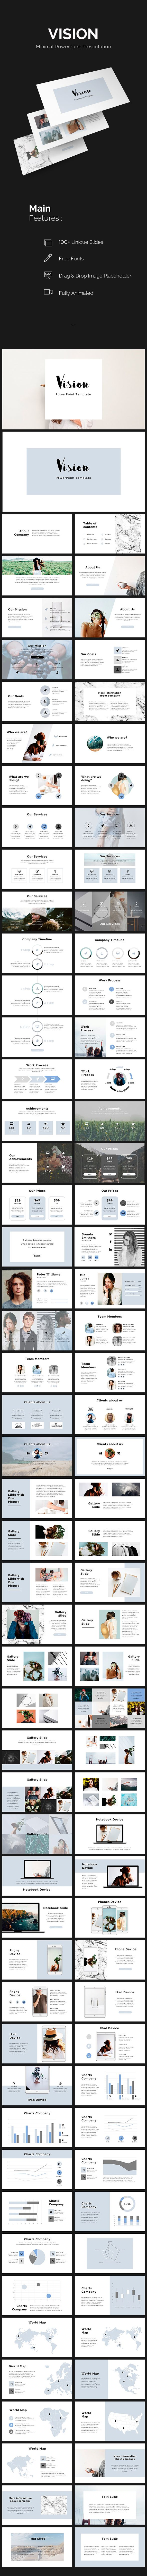 Vision Minimal PowerPoint Template — Powerpoint PPT #excel #entrepreneur • Download ➝ https://graphicriver.net/item/vision-minimal-powerpoint-template/19373442?ref=pxcr